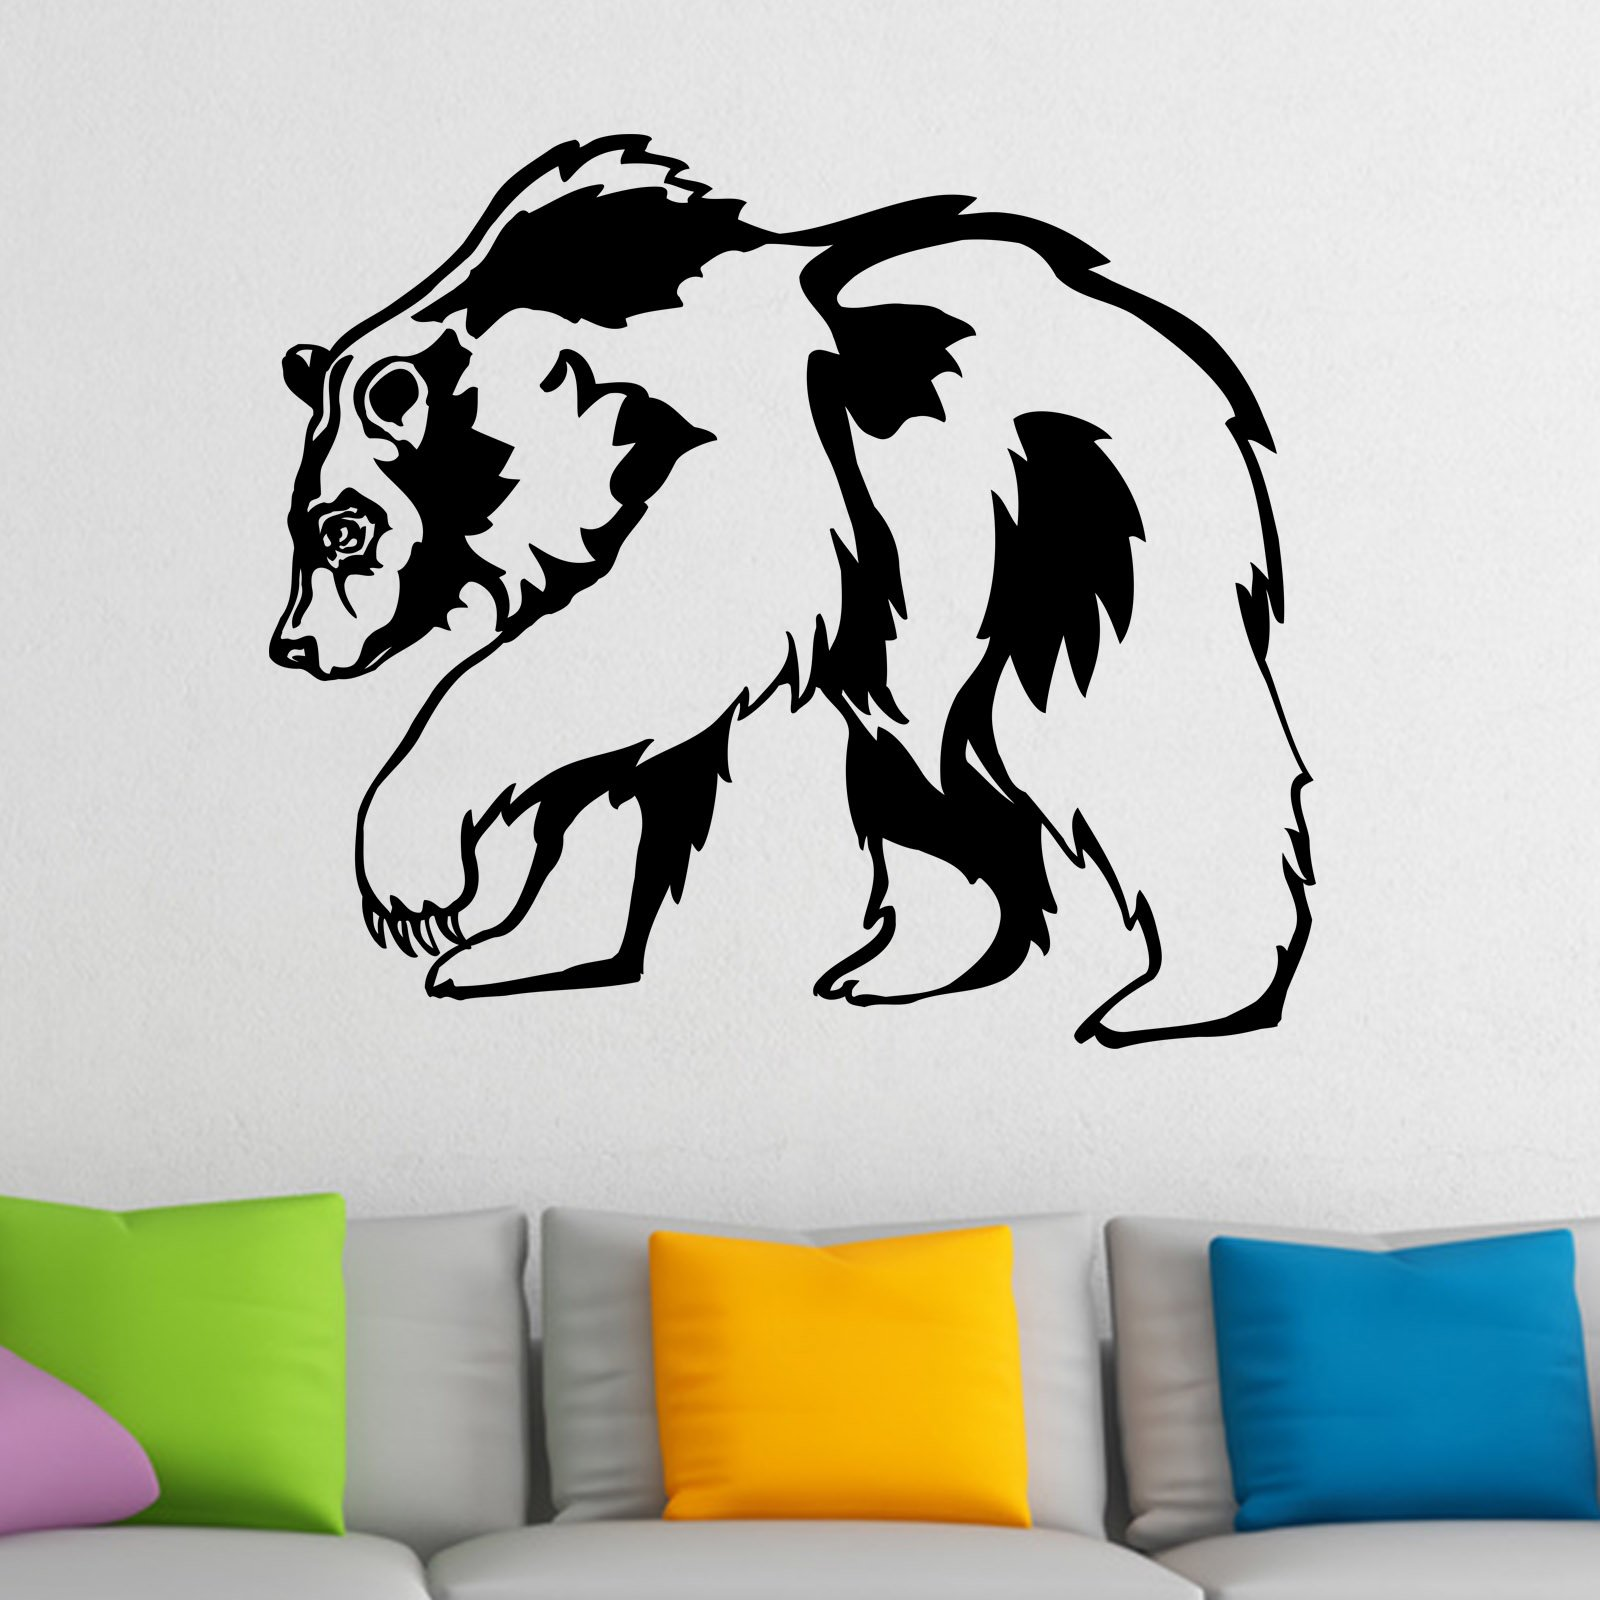 grizzly bear animal wall sticker world of wall stickers kids wall decal bear nursery decor by leolittlelion on etsy